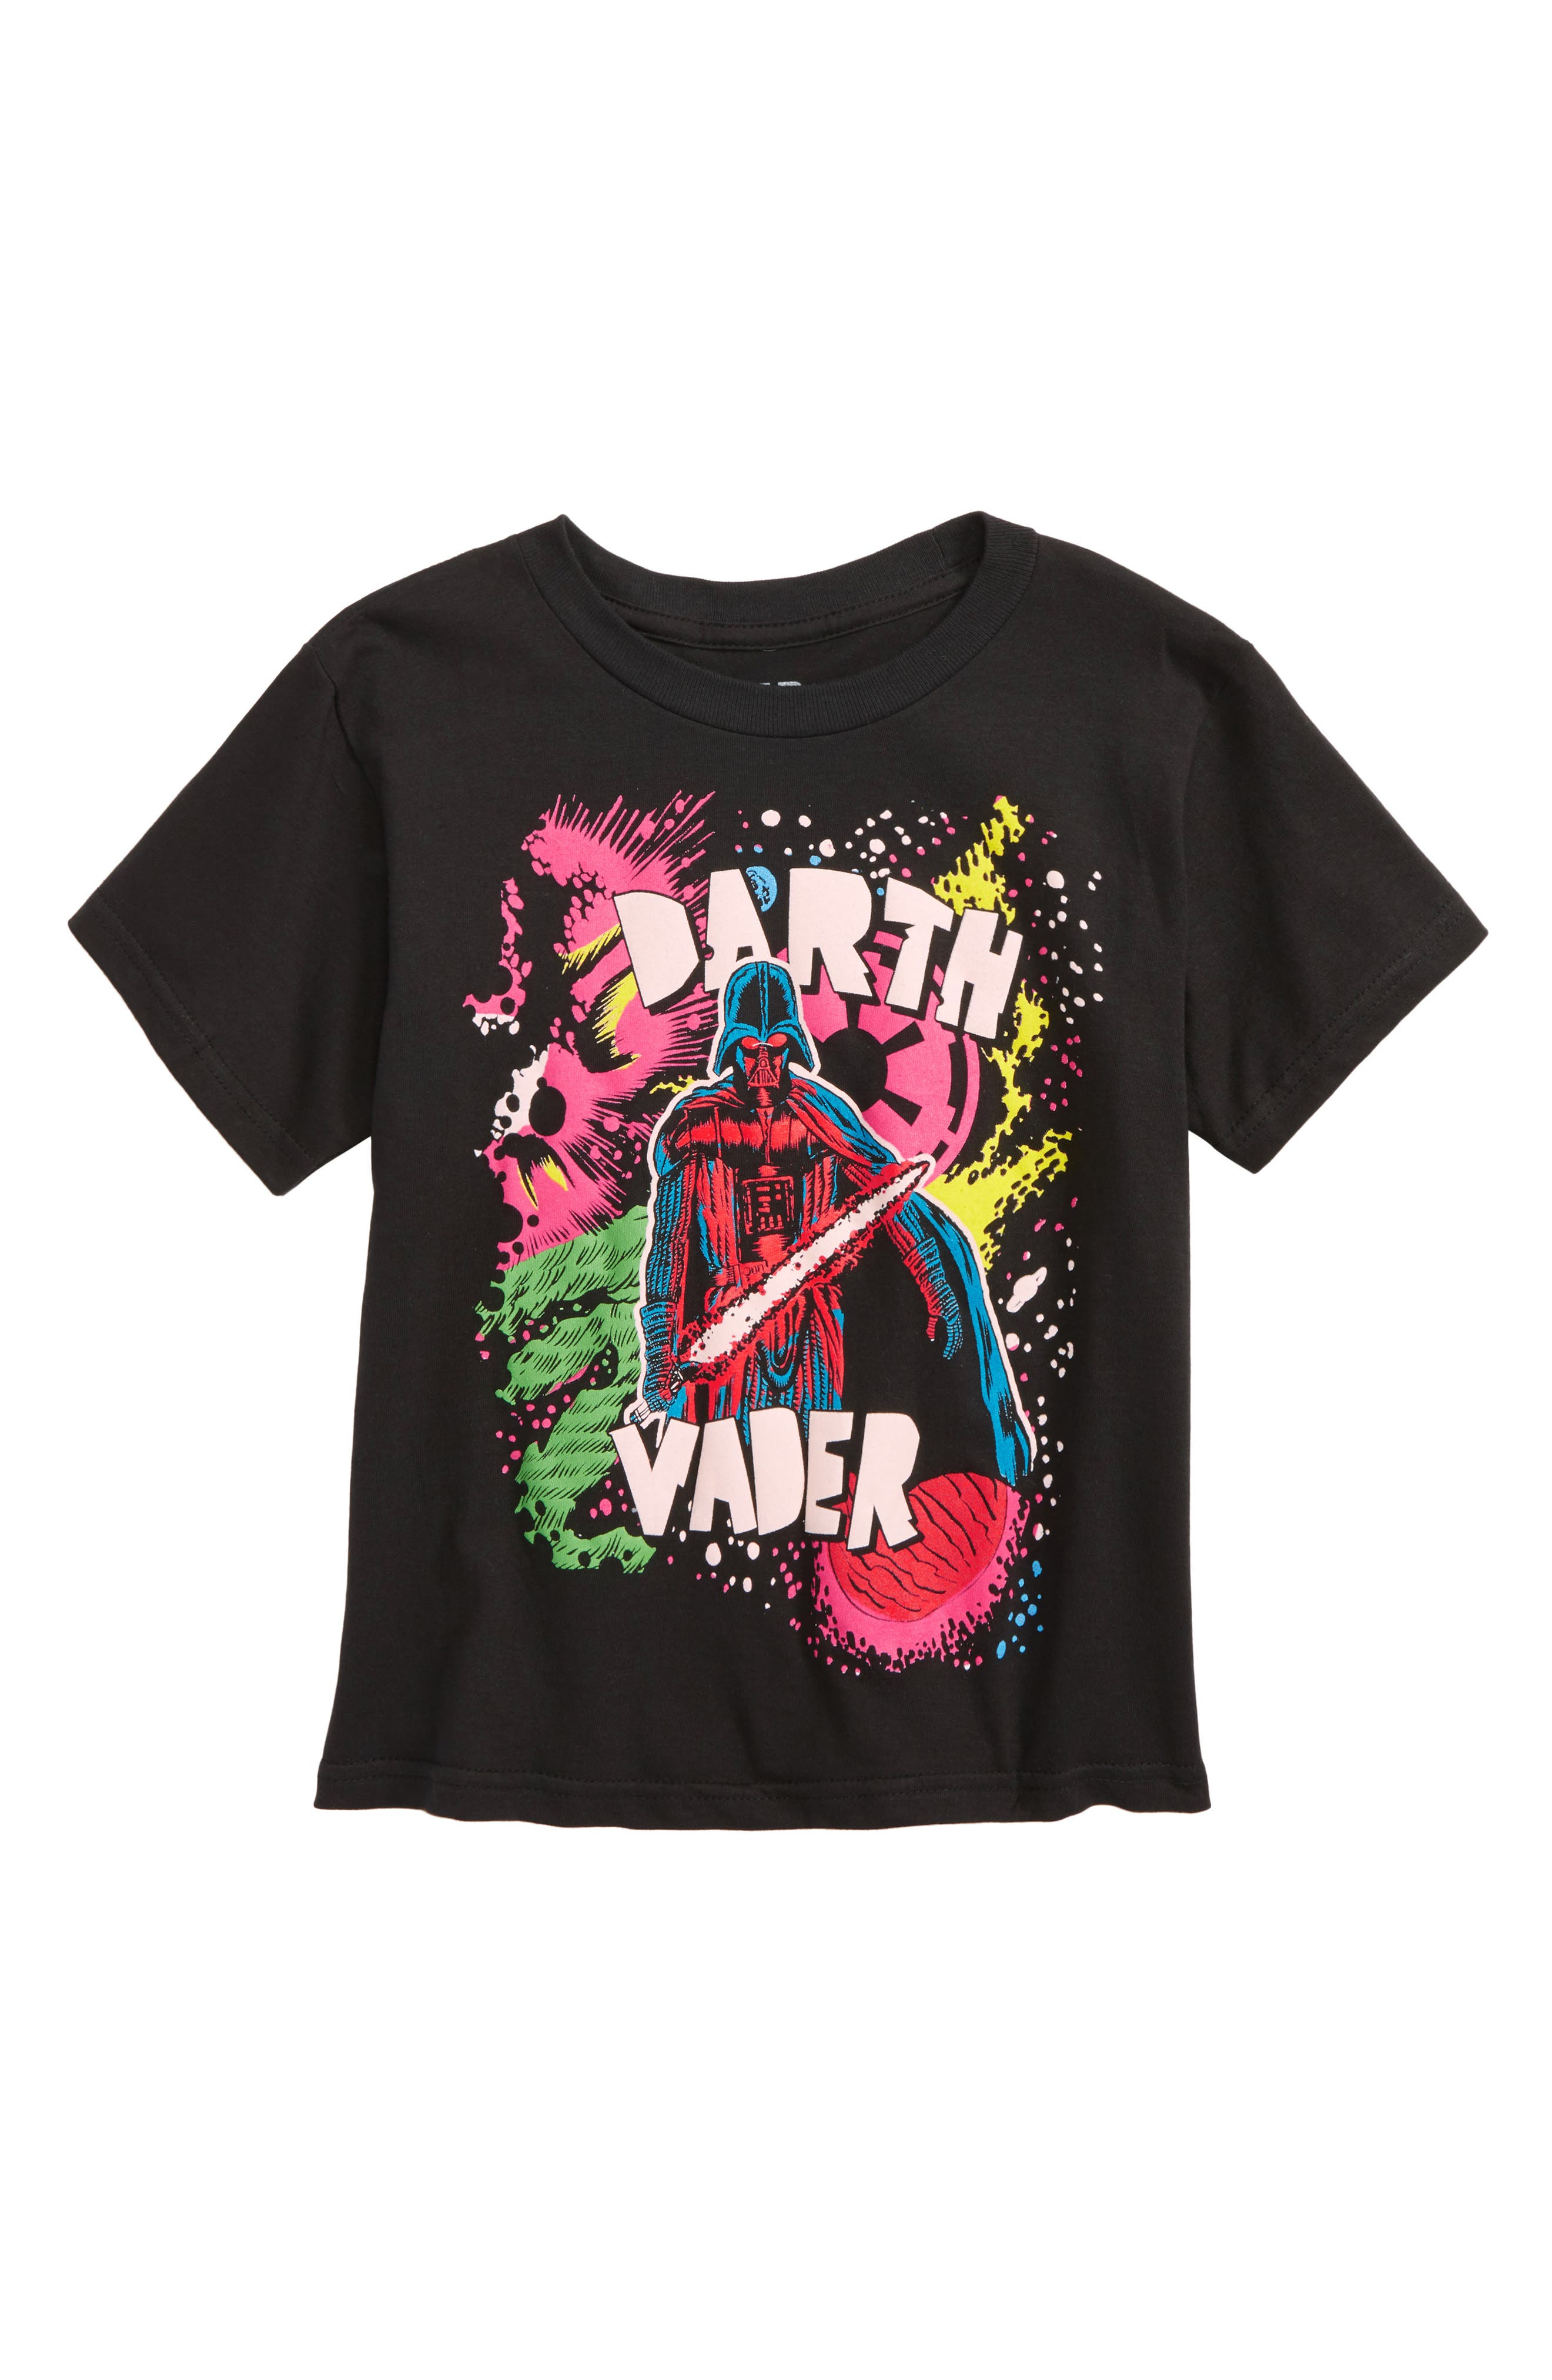 Star Wars<sup>™</sup> Vader in Space Graphic T-Shirt,                             Main thumbnail 1, color,                             Black